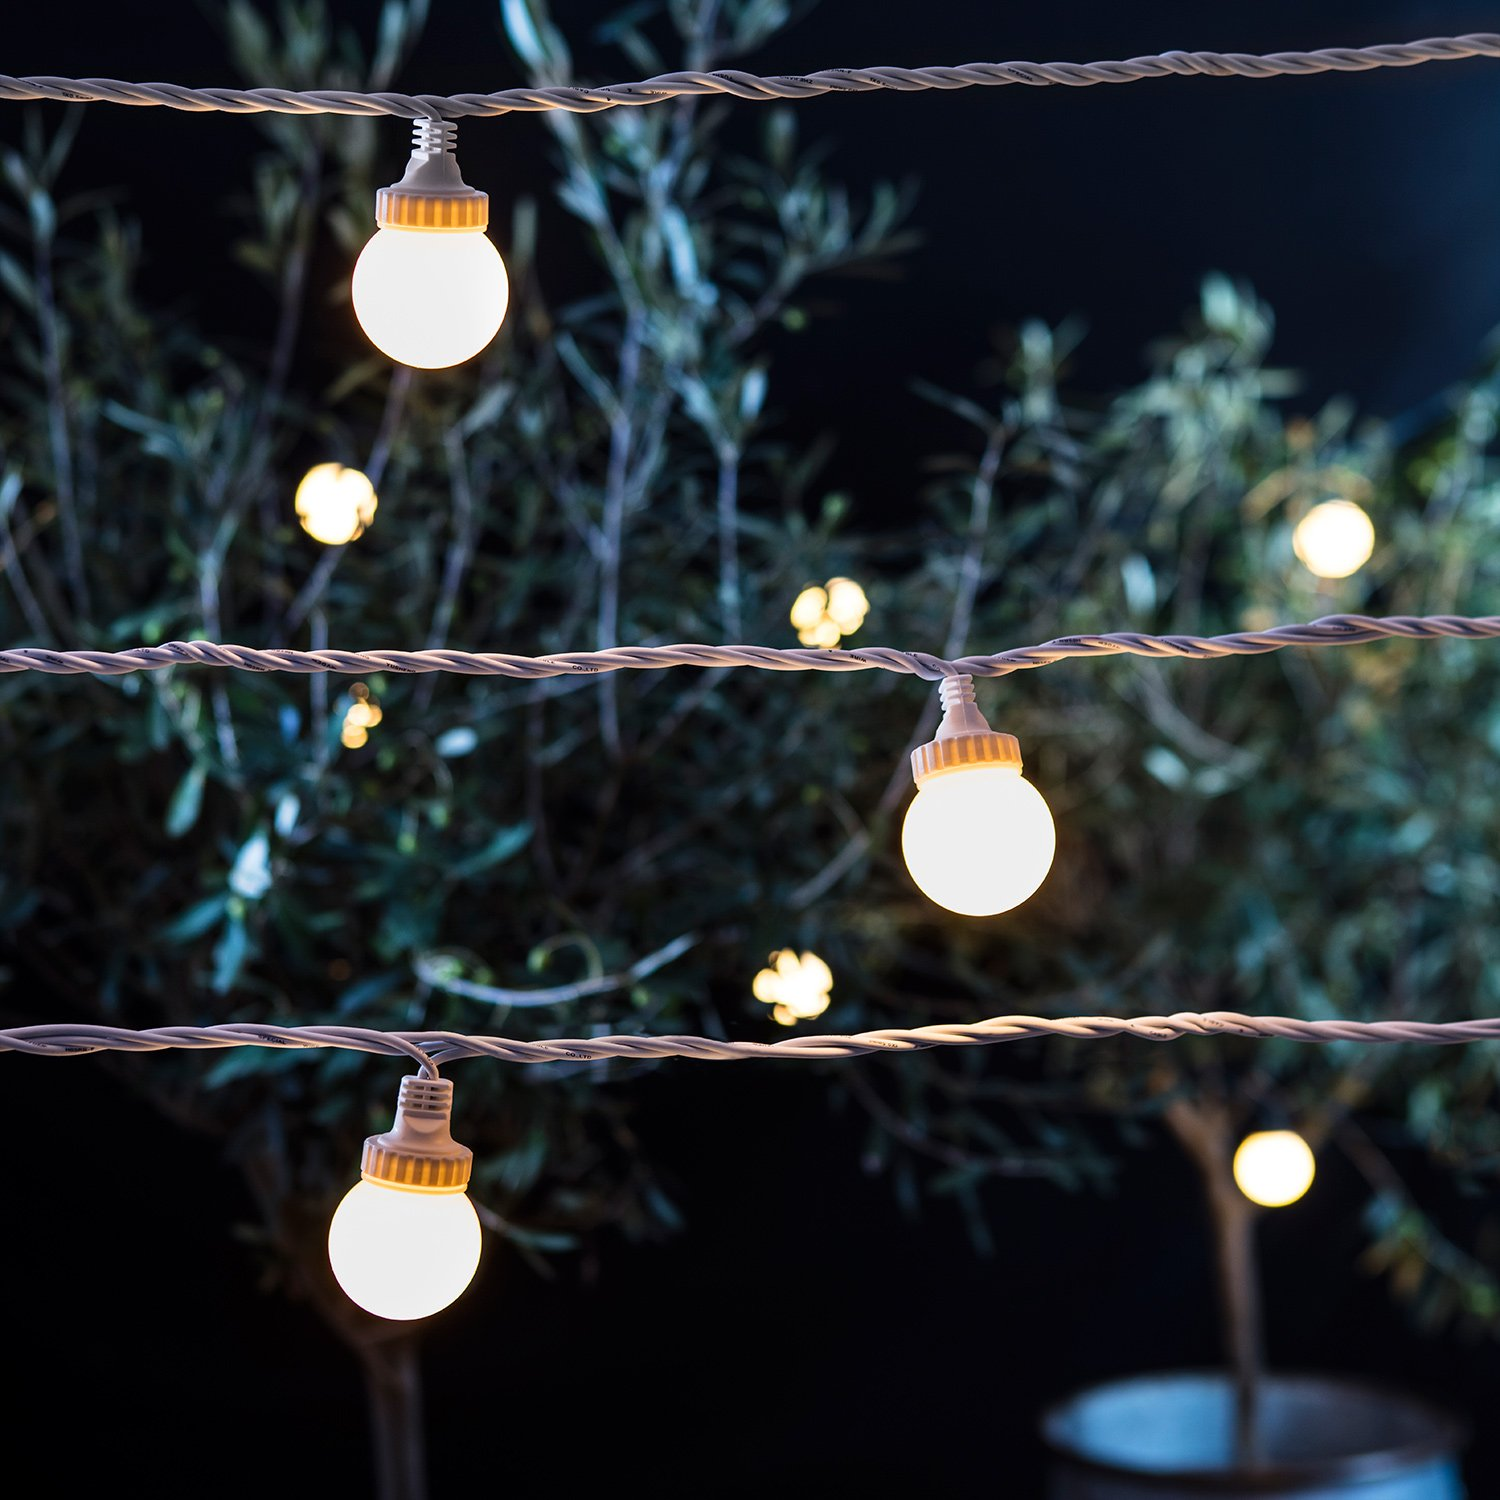 Outdoor Festoon Lights 100 warm white led outdoor connectable pro series festoon party 100 warm white led outdoor connectable pro series festoon party lights on white cable by lights4fun amazon garden outdoors workwithnaturefo